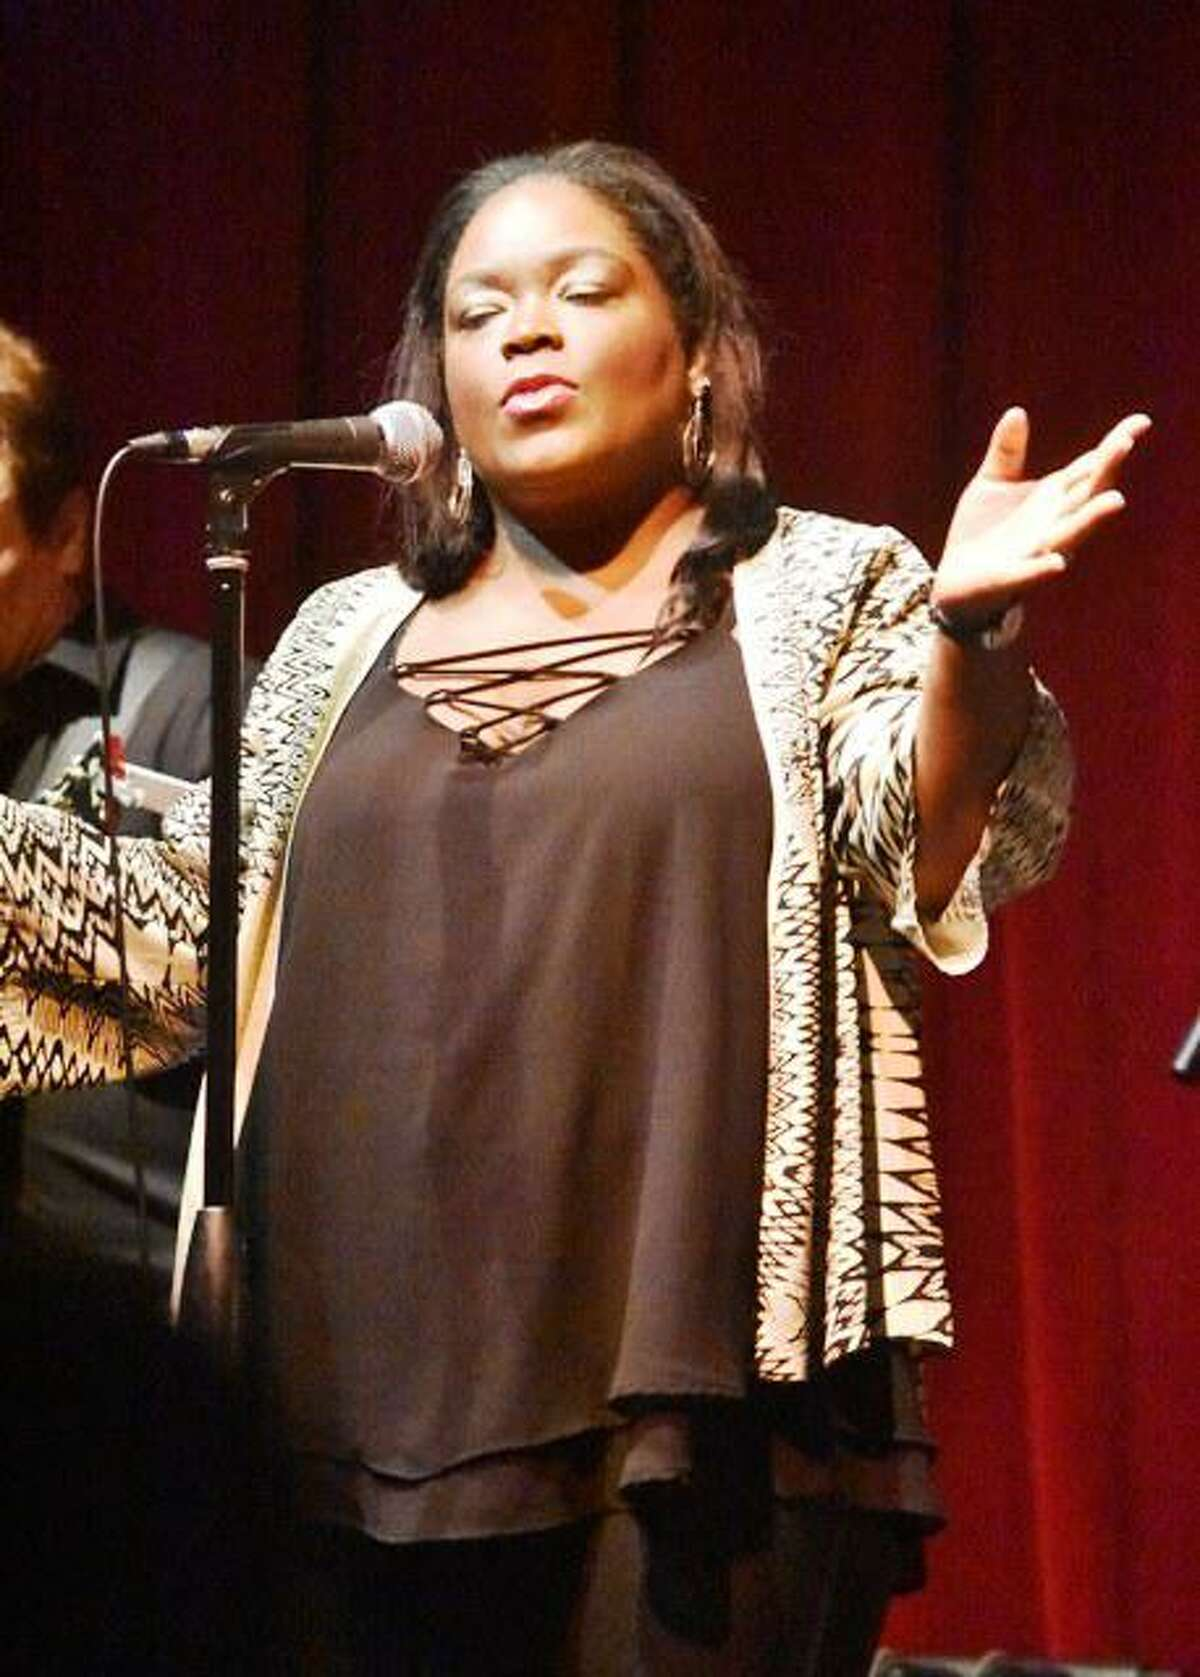 Blues diva Shemekia Copeland to perform at The Stafford Palace Theater in Stafford Springs on Friday.